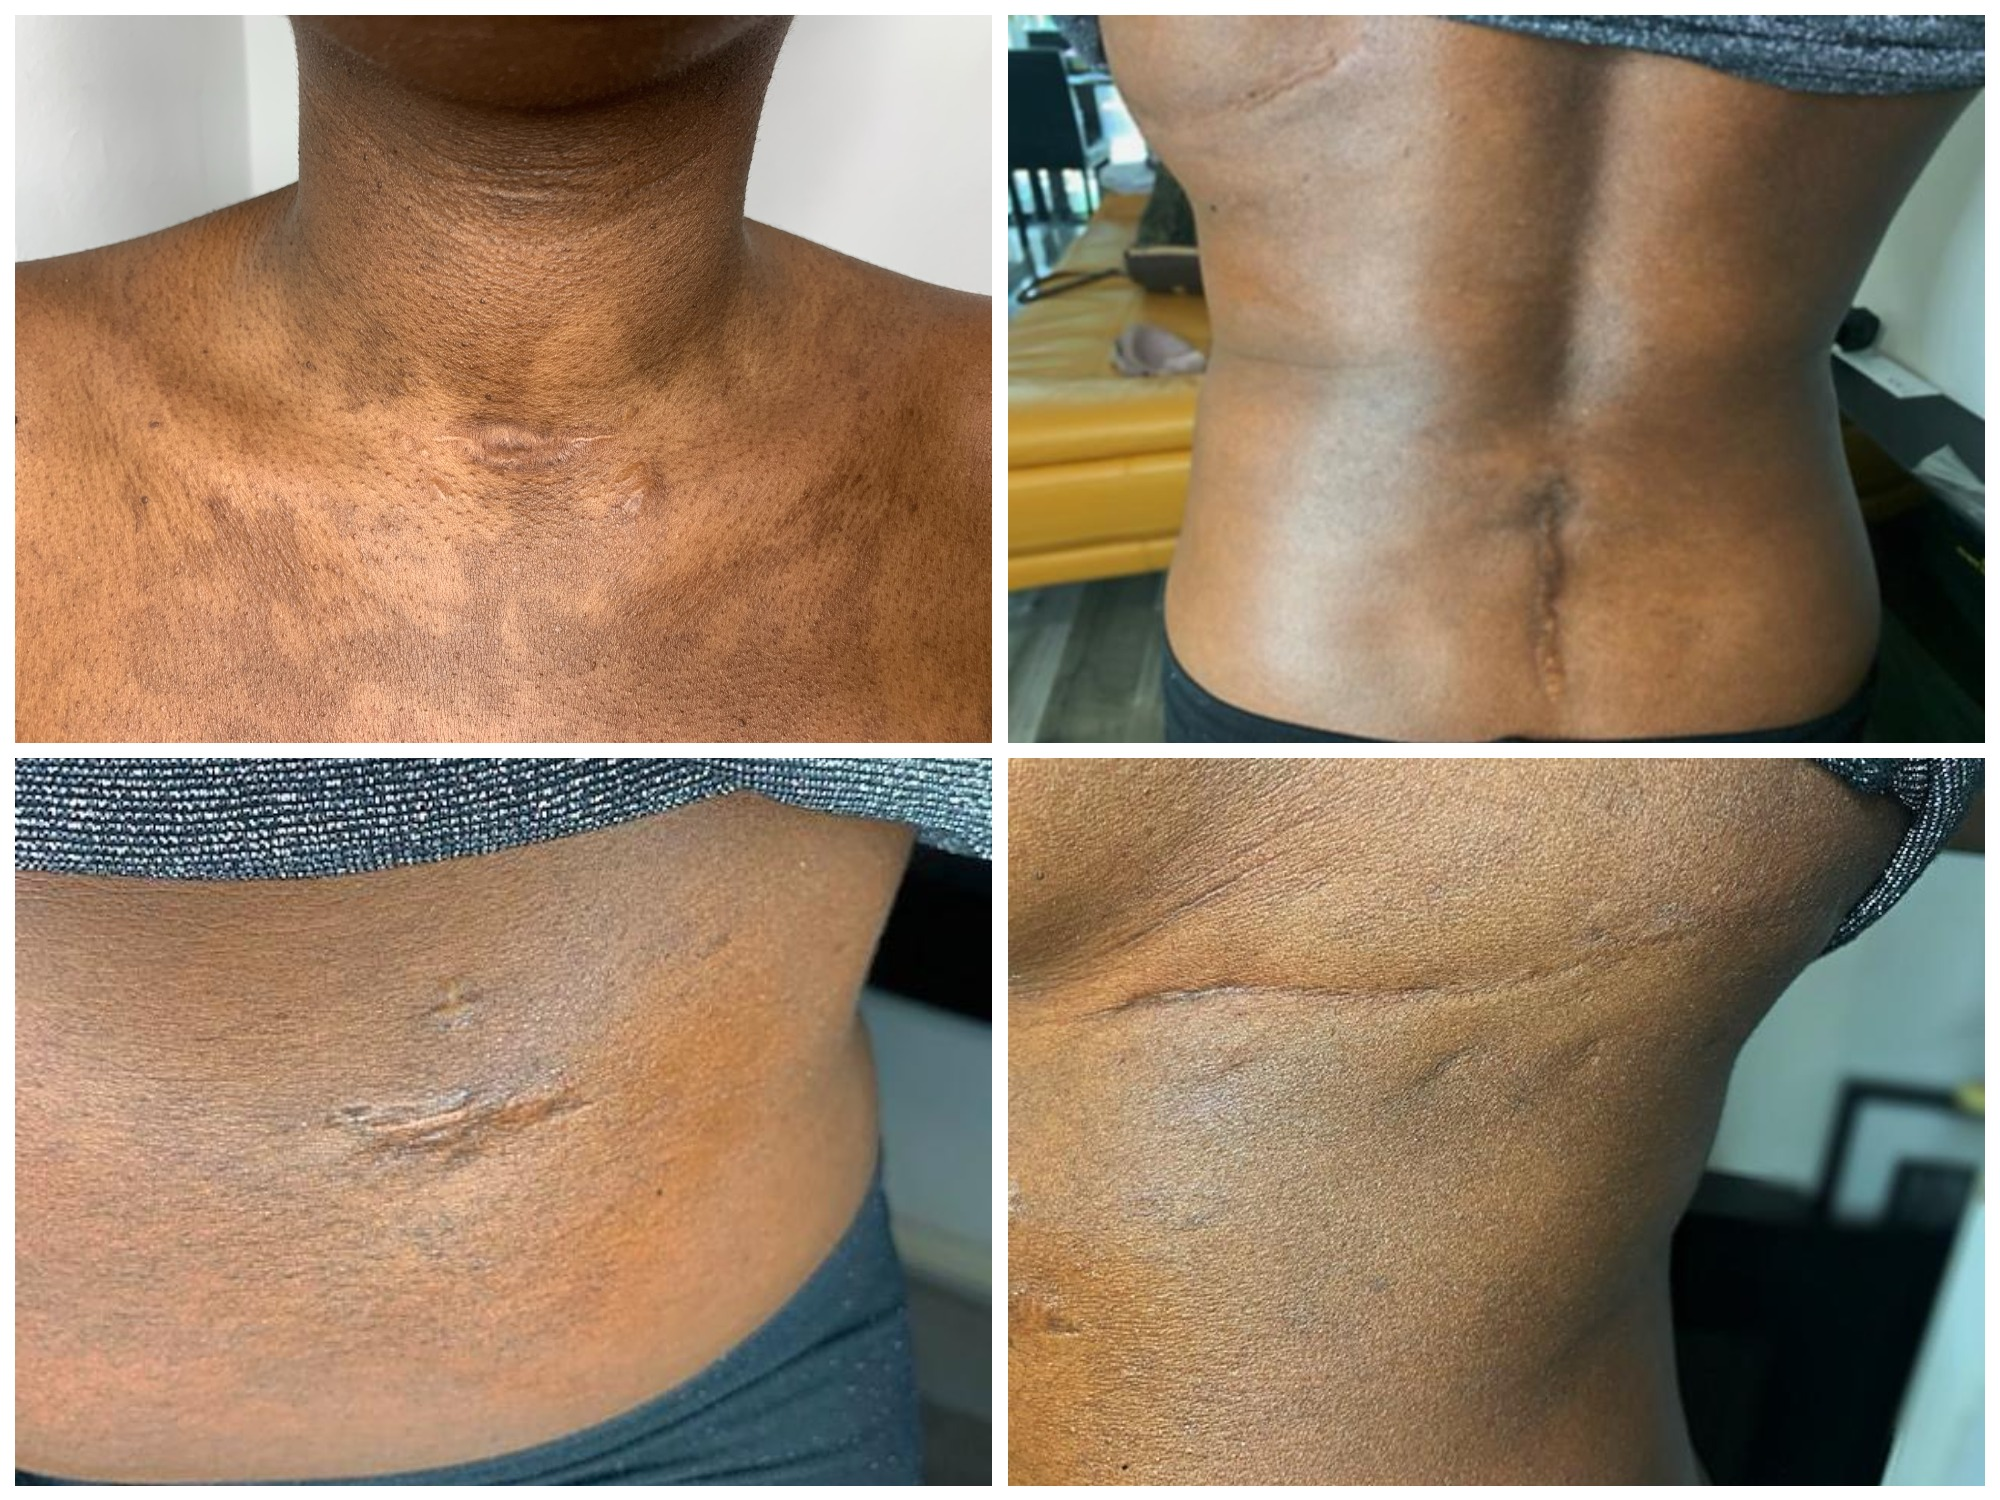 Four images which show a woman's scars on her neck and back.